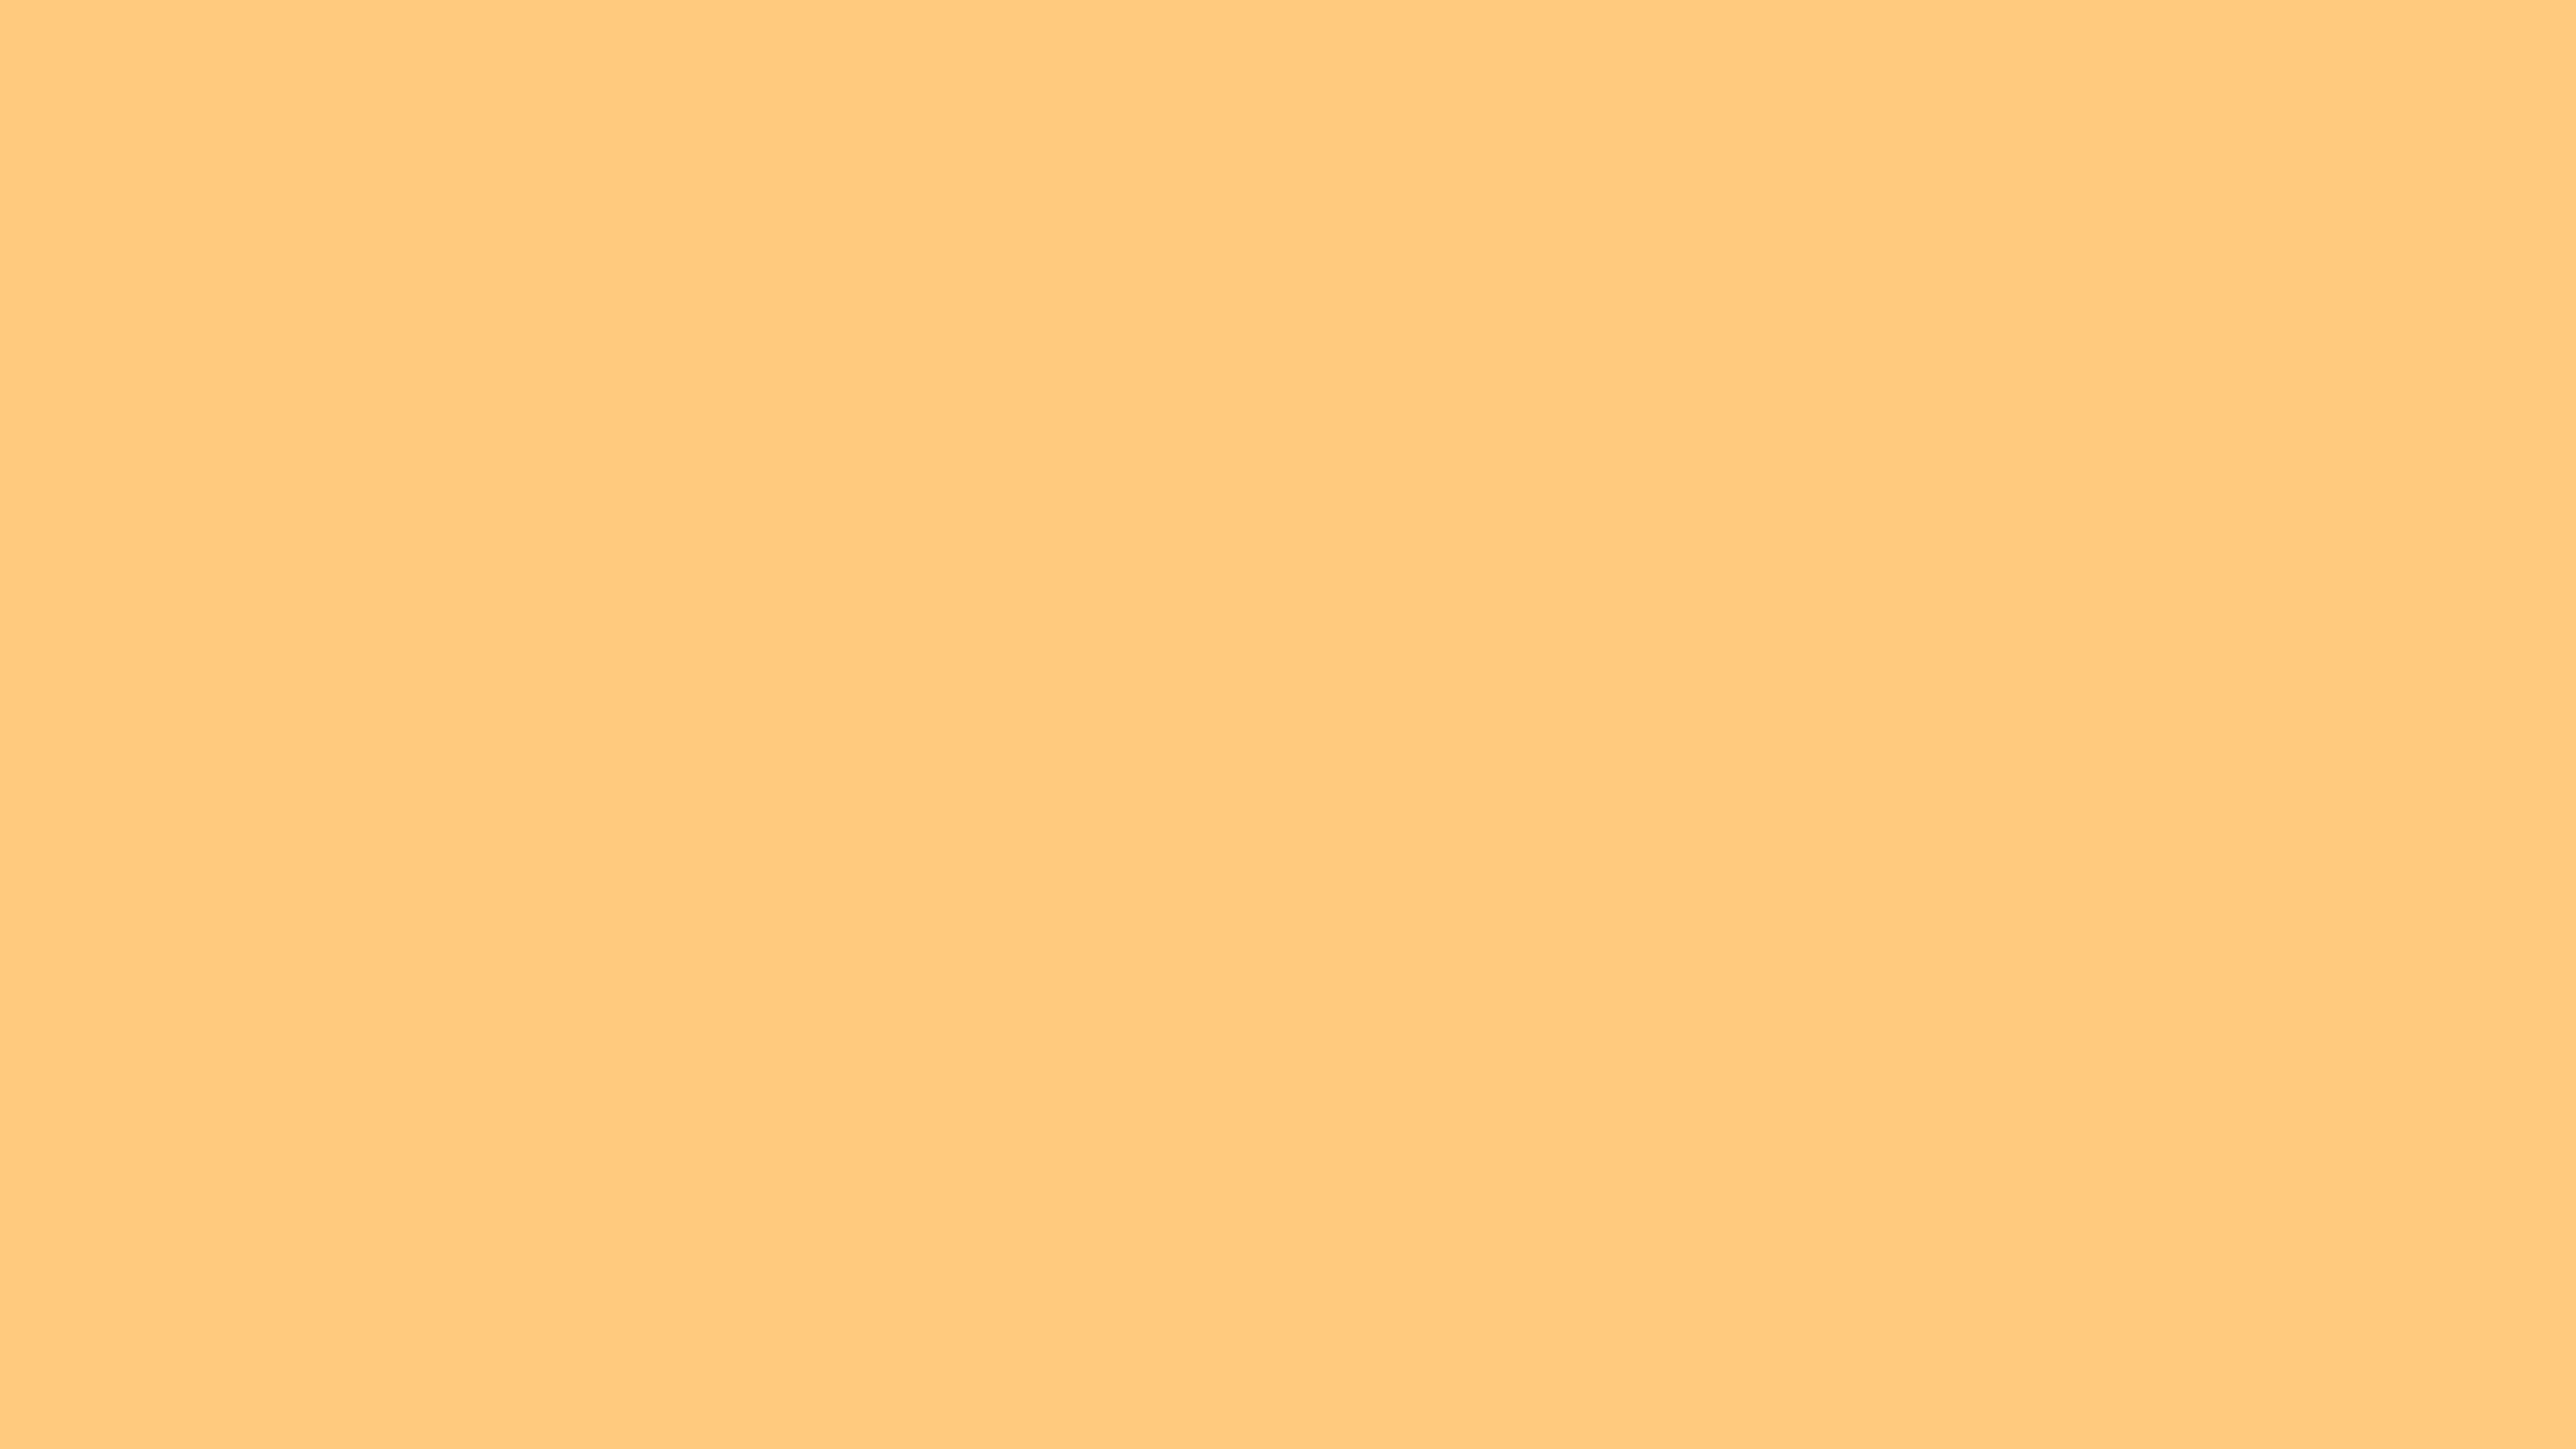 5120x2880 Topaz Solid Color Background